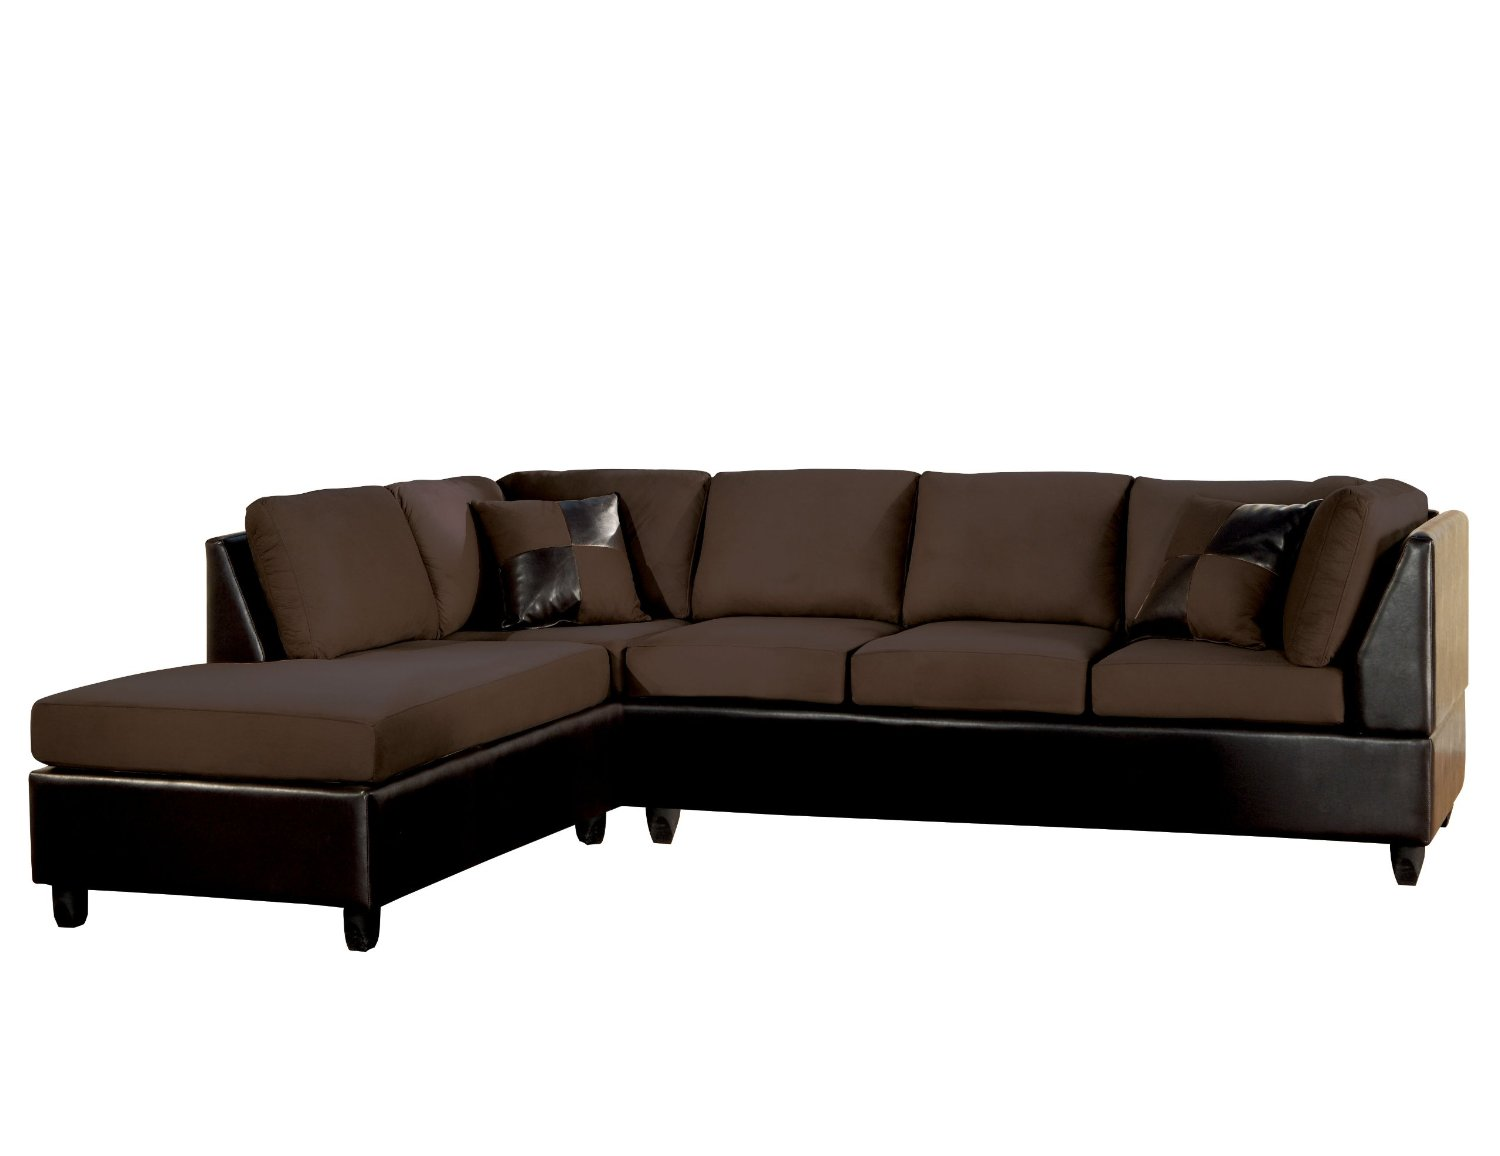 Sectional Leather Sofas | Queen Sofa Sleeper Sectional Microfiber | Sectional  Sleeper Sofa